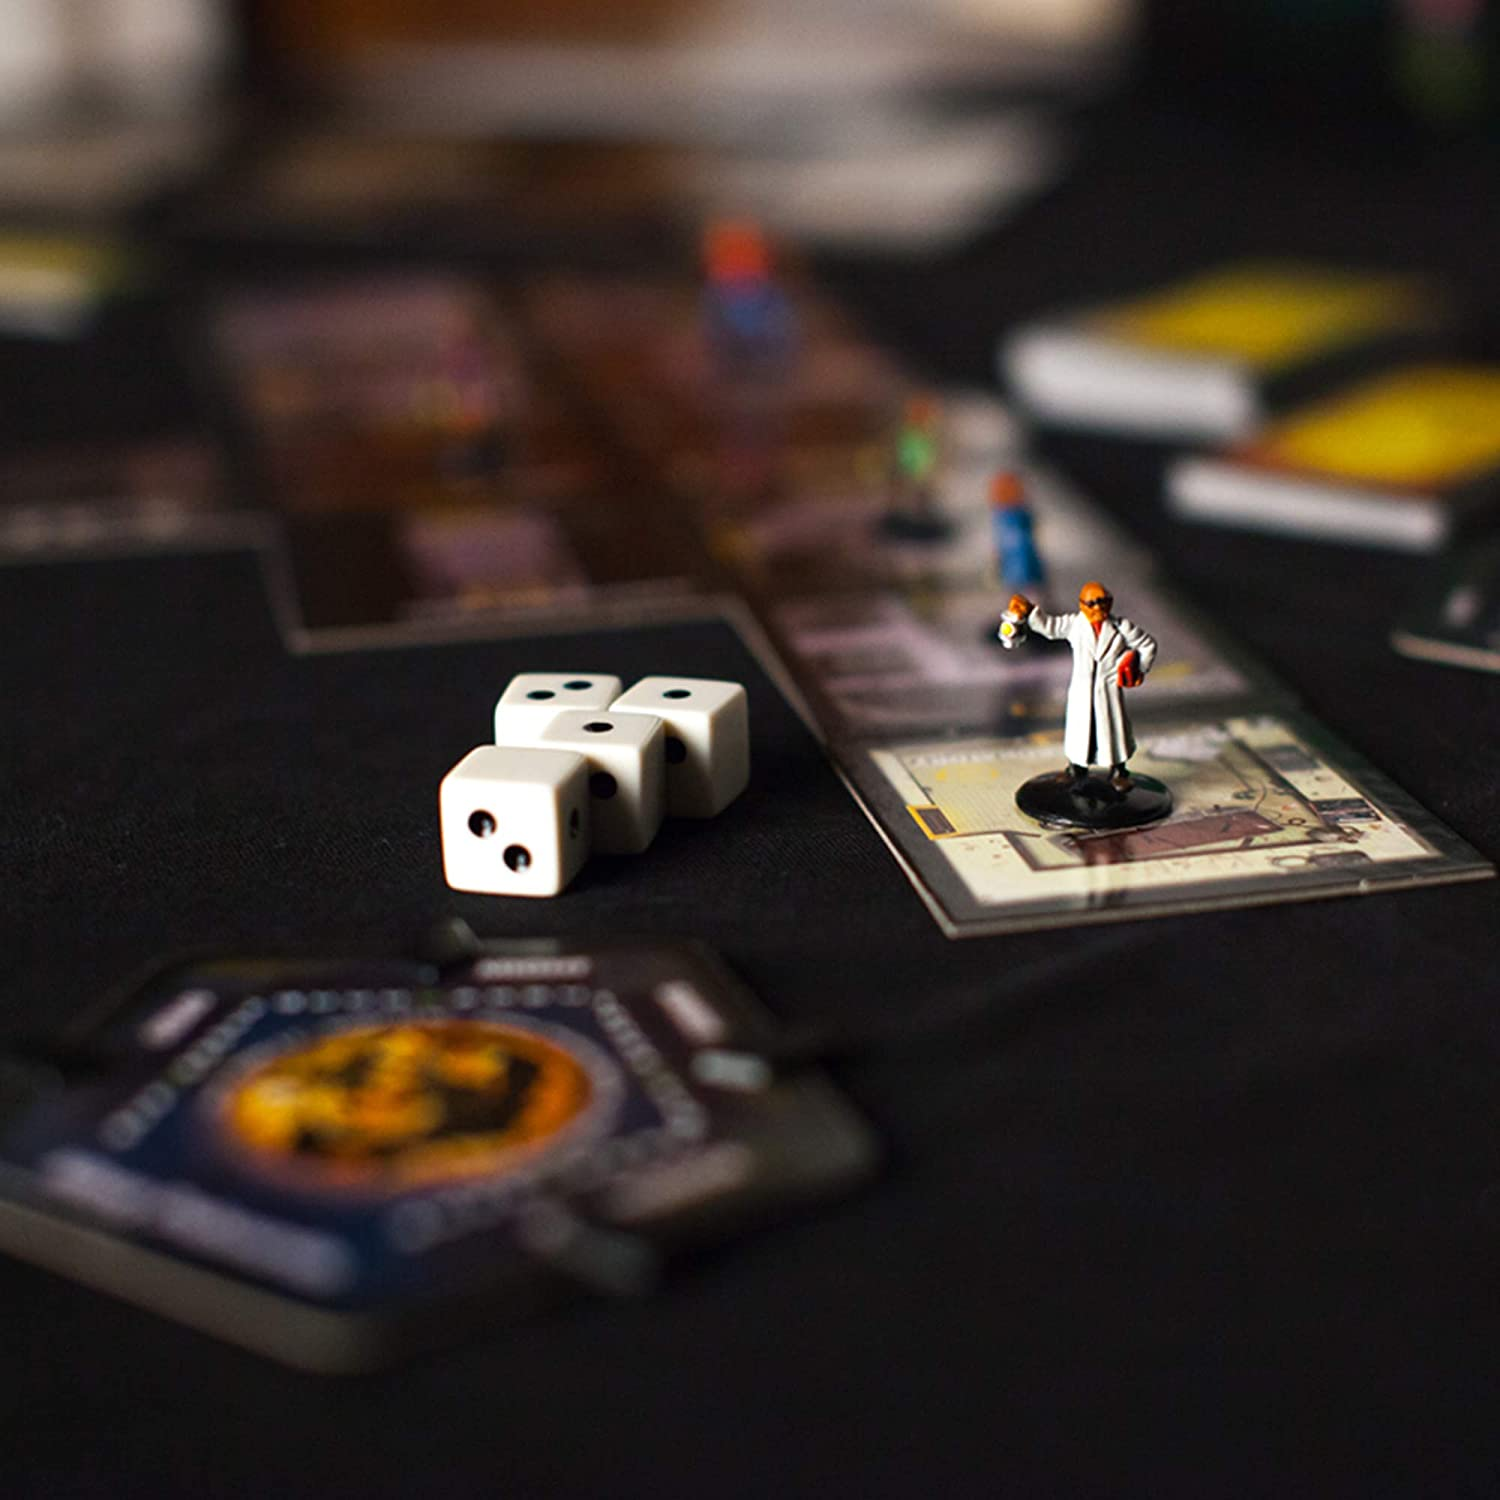 Daily Deals On Family Board Games Perfect For Nights In - Betrayal At House On The Hill